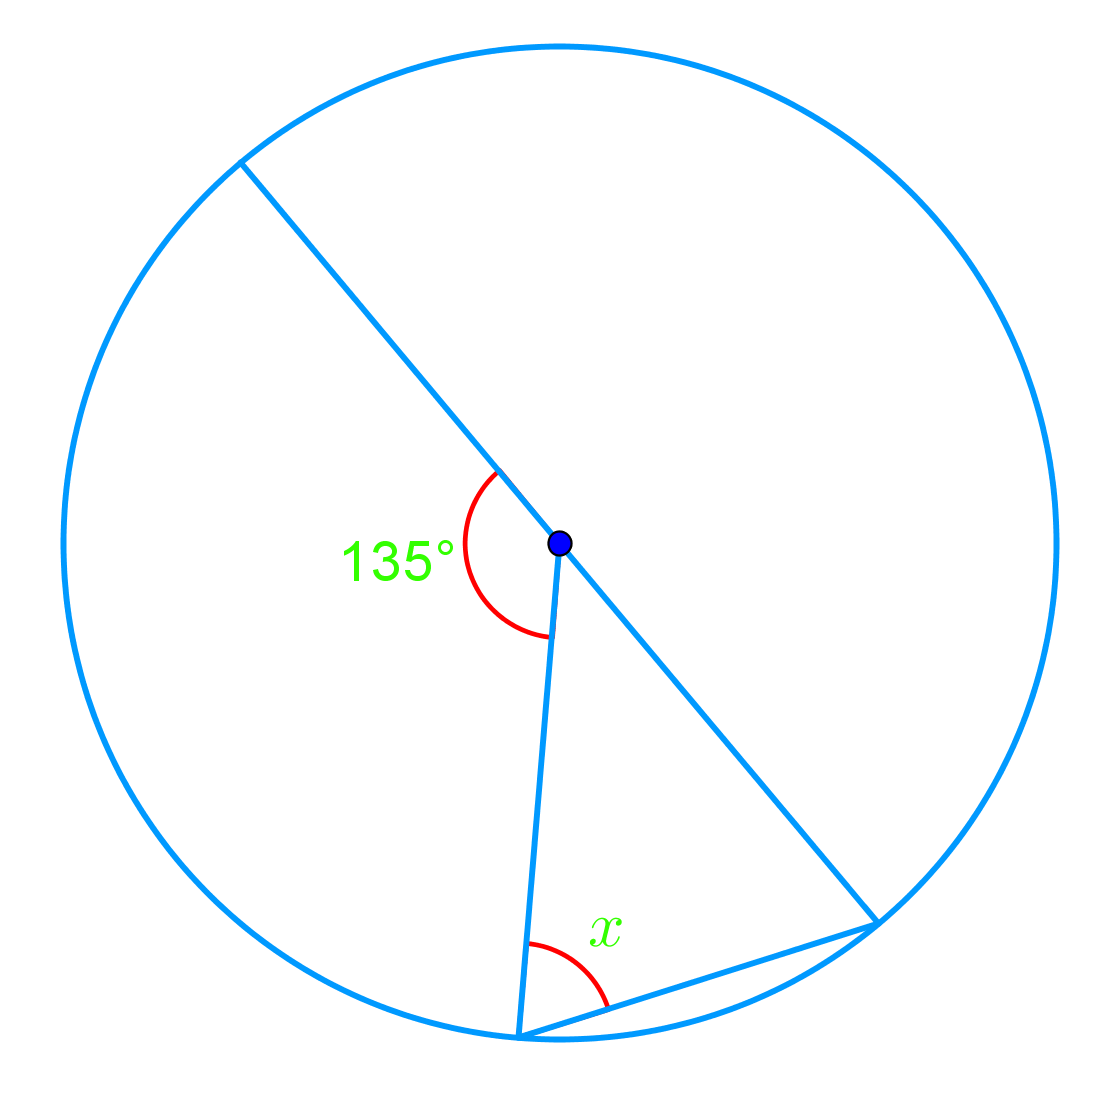 What Are Central And Inscribed Angles In Circles